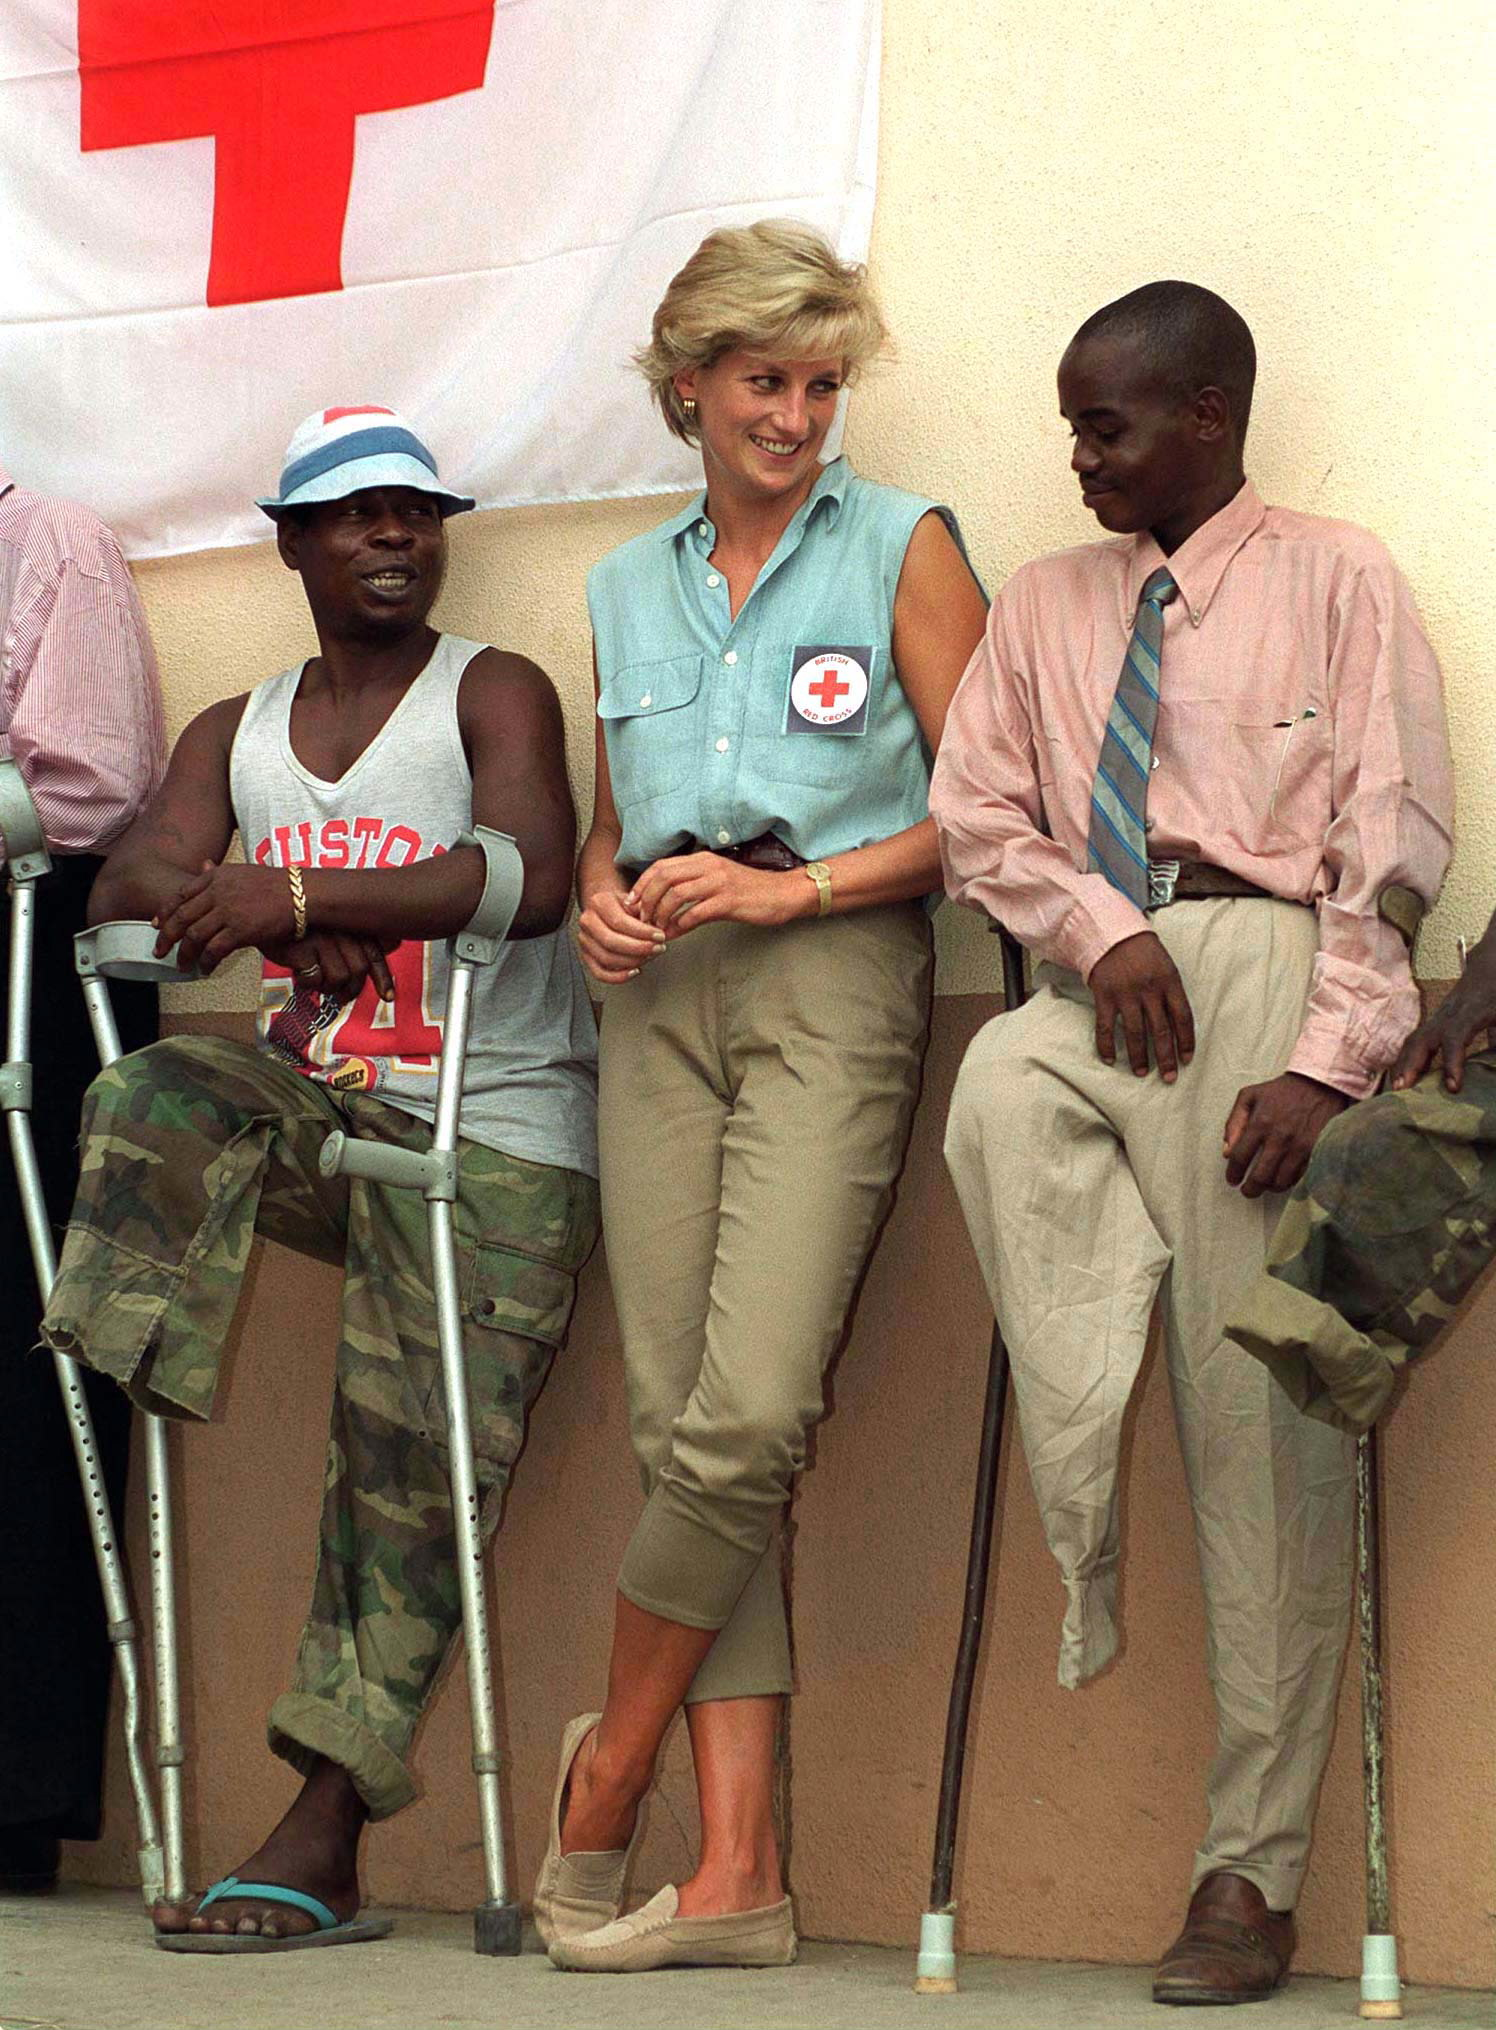 For a trip to Angola doing aid work in 1997, Diana dressed practically in a sleeveless chambray button-down and a pair of khaki pants.